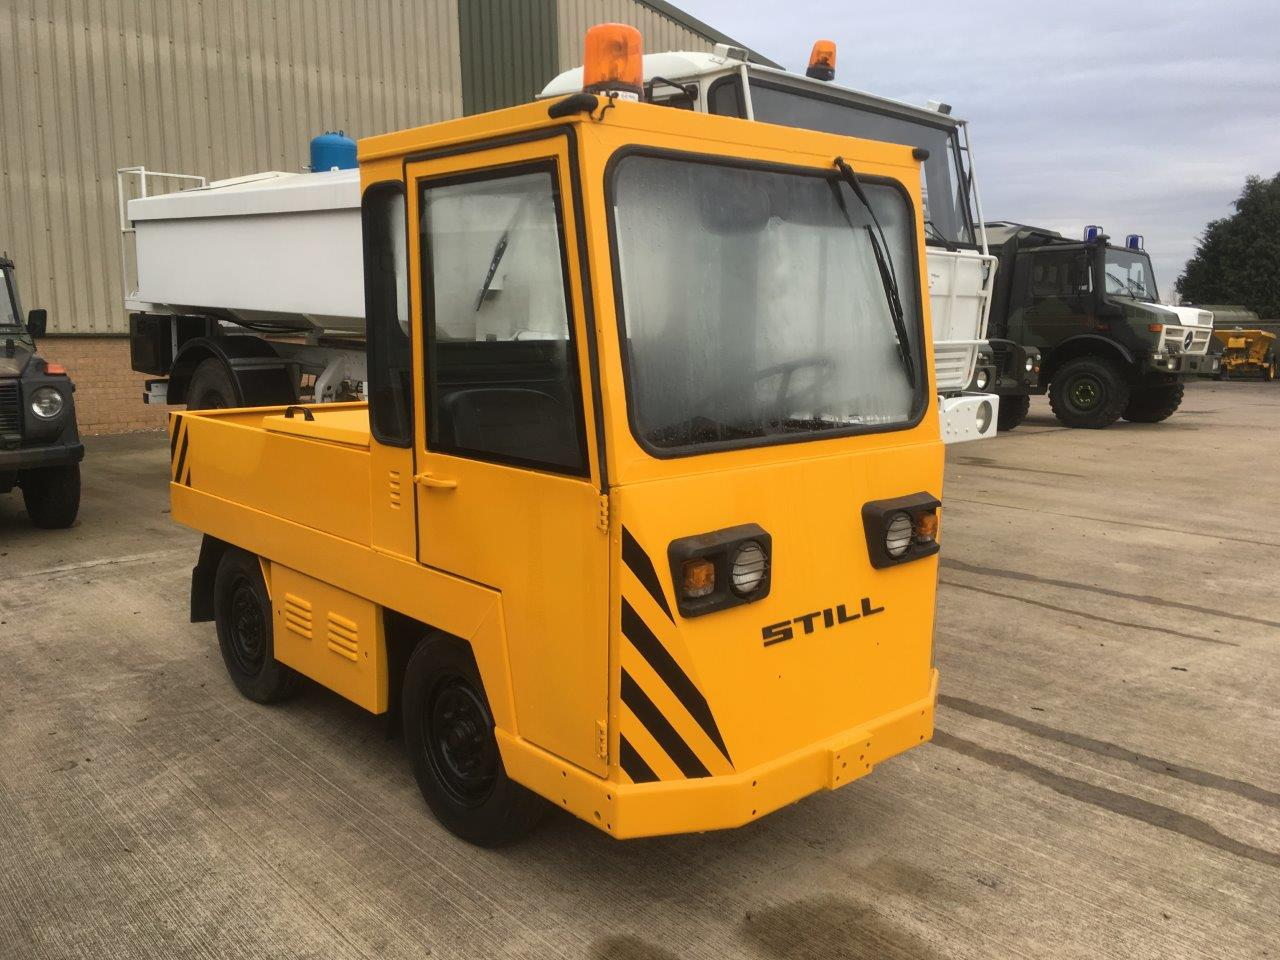 Still R07 Aircaft Tug | used military vehicles, MOD surplus for sale